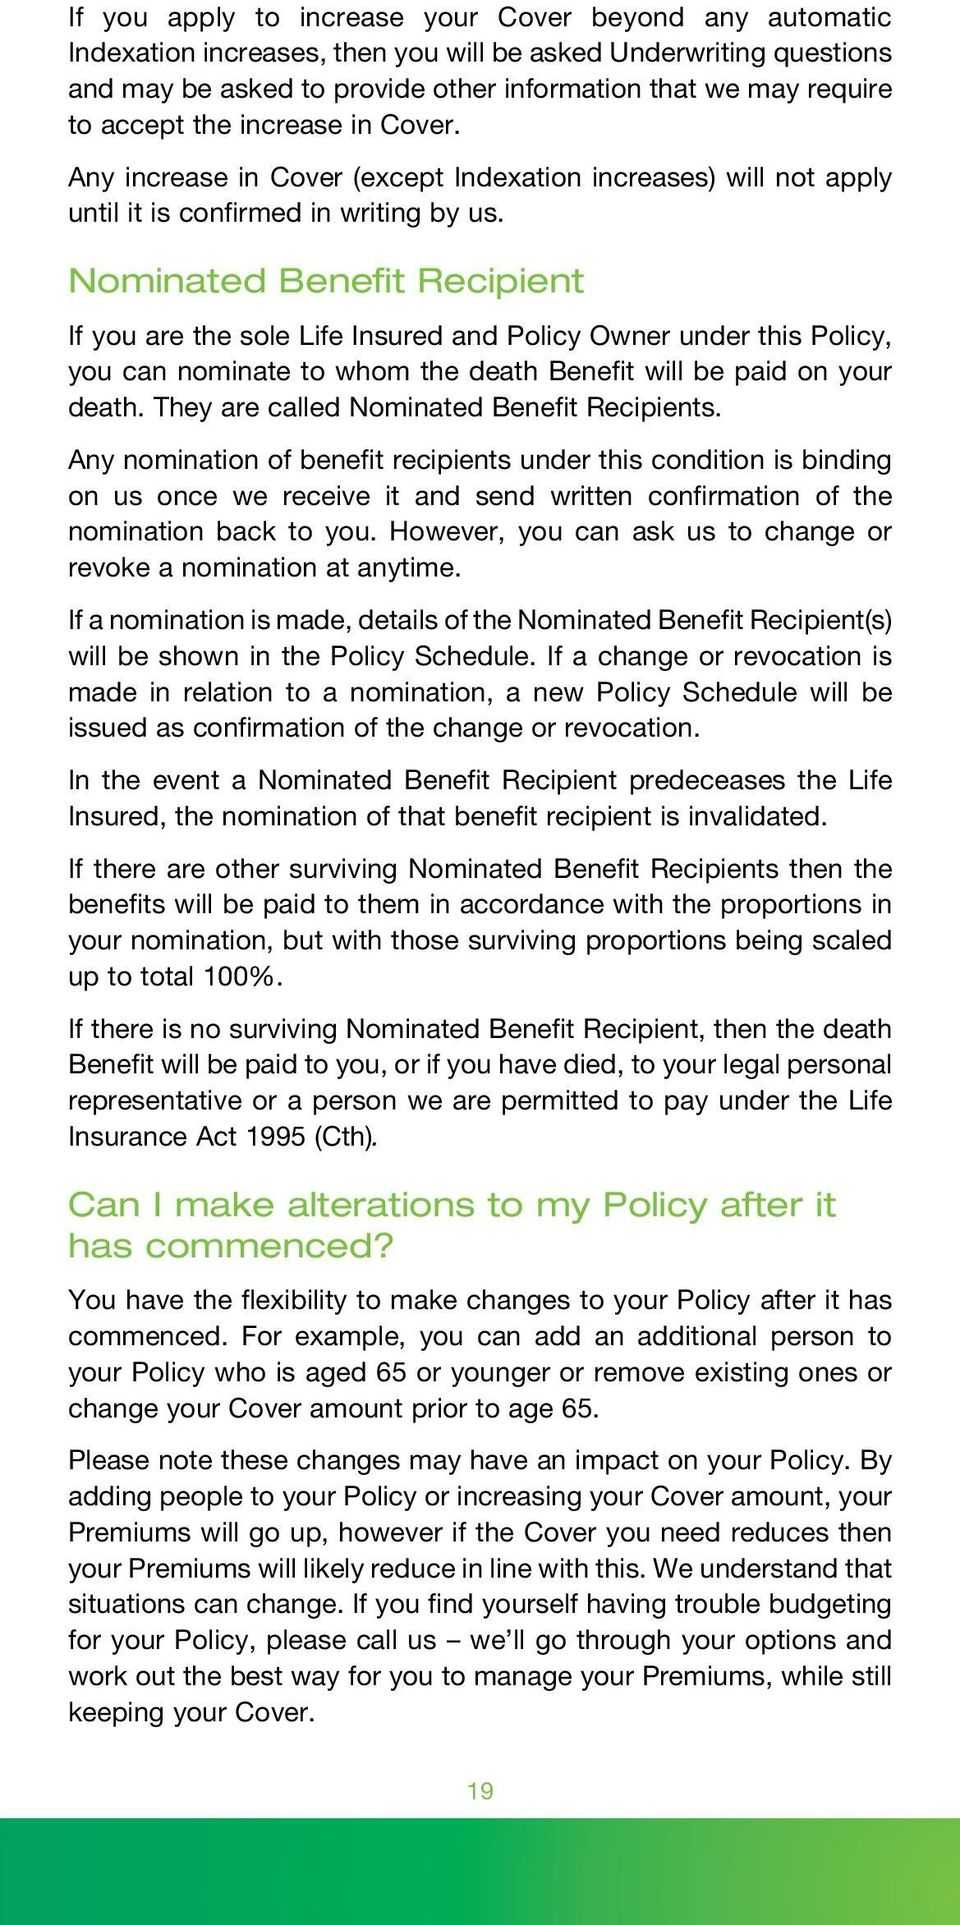 Nominated Benefit Recipient If you are the sole Life Insured and Policy Owner under this Policy, you can nominate to whom the death Benefit will be paid on your death.